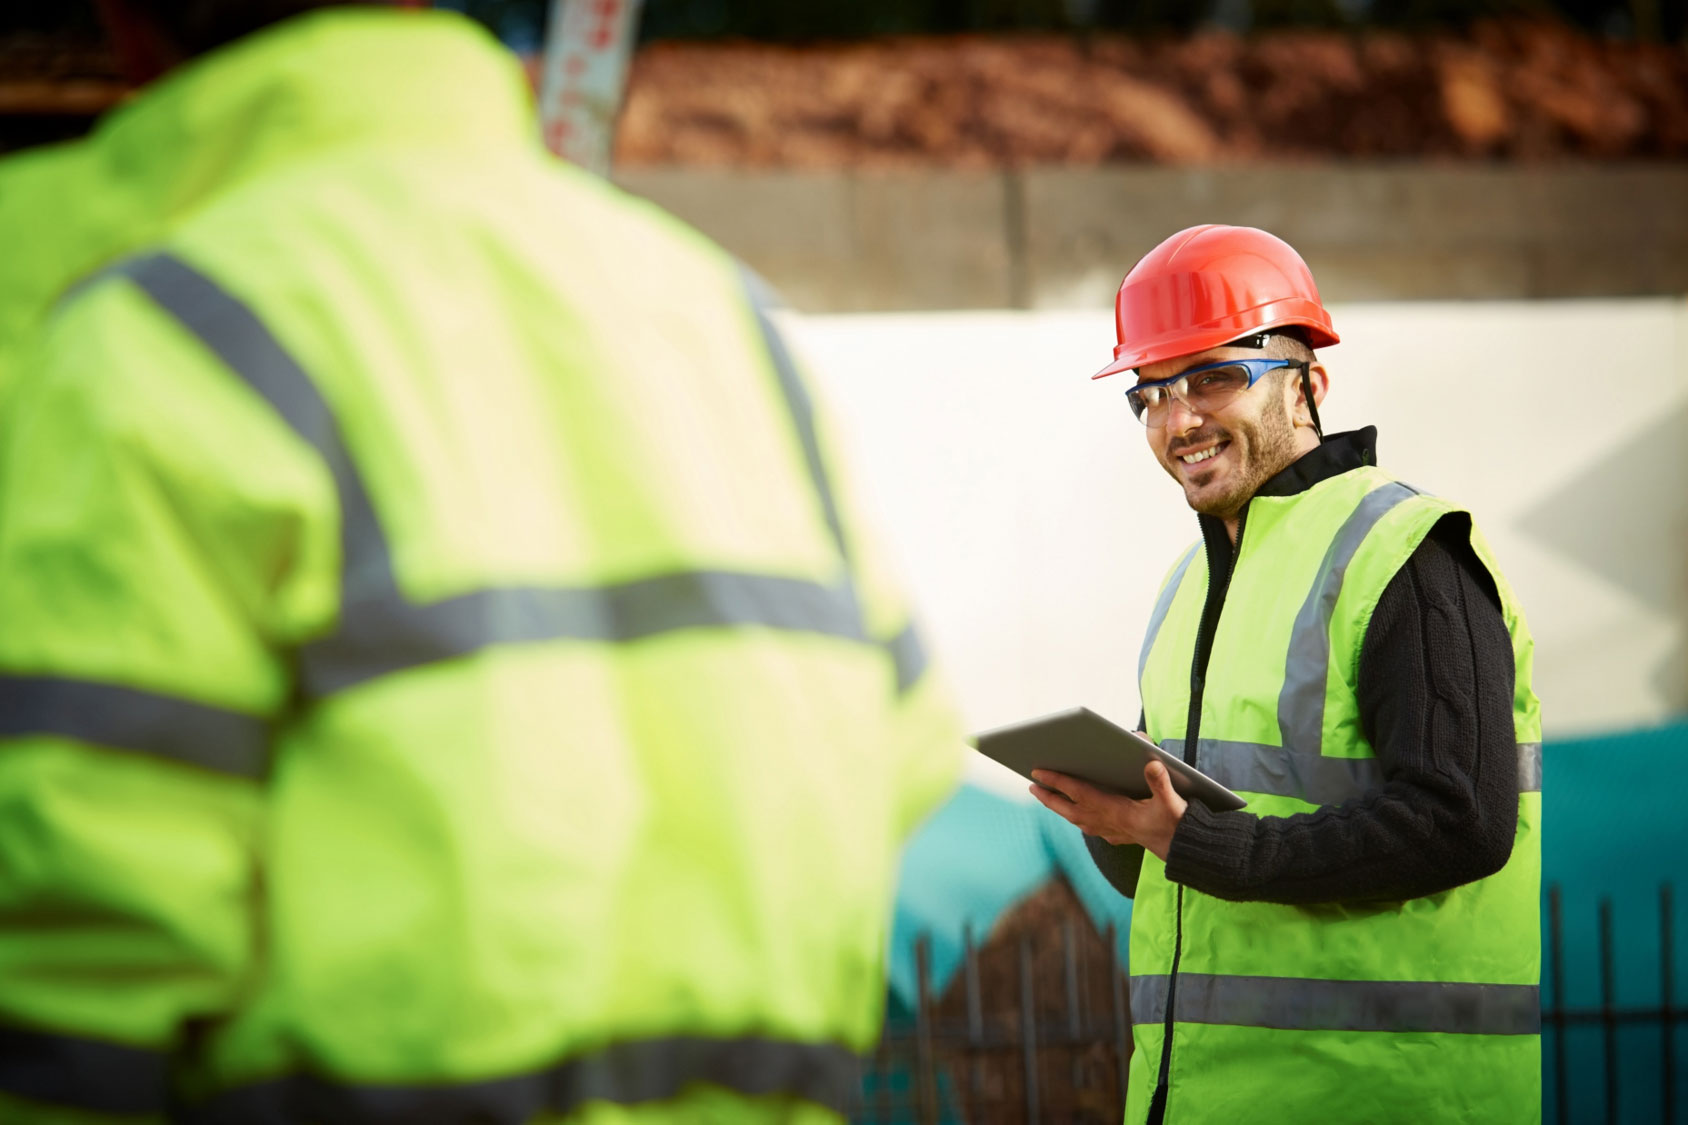 Sonae Arauco Focused on Occupational Health & Safety